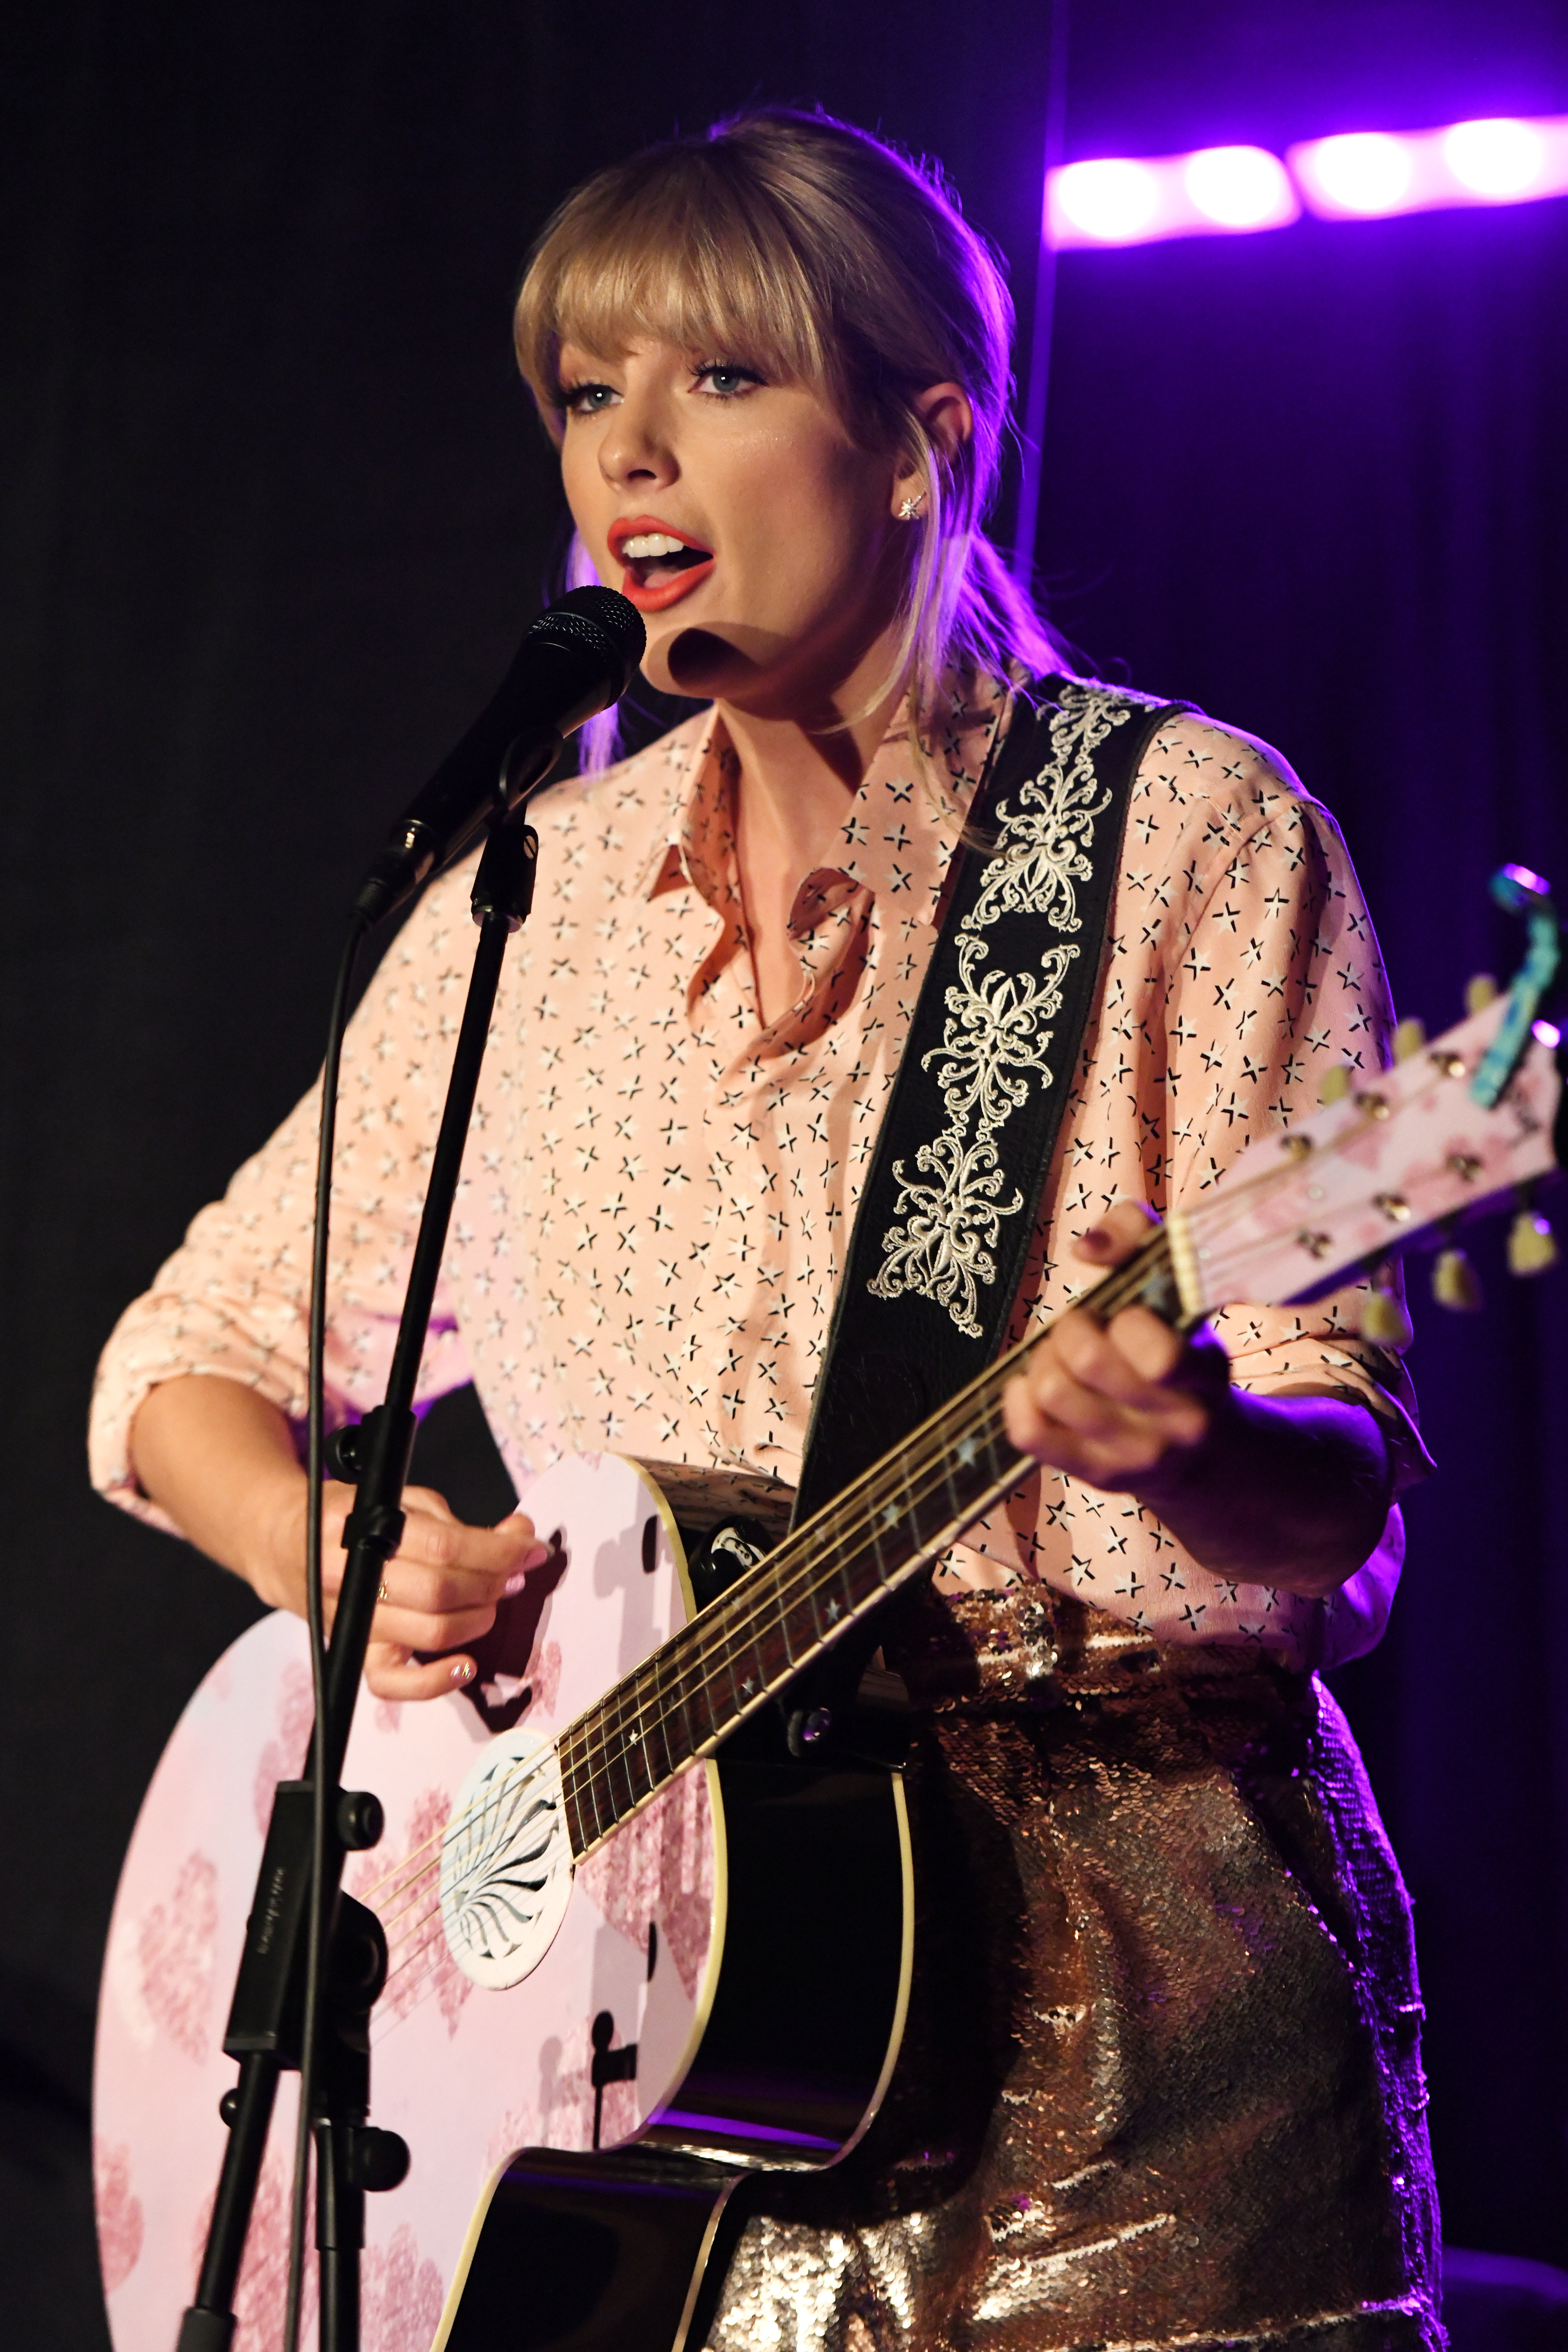 Taylor Swift performs at AEG and Stonewall Inn's pride celebration commemorating the 50th anniversary of the Stonewall Uprising at Stonewall Inn in New York City on  June 14, 2019.